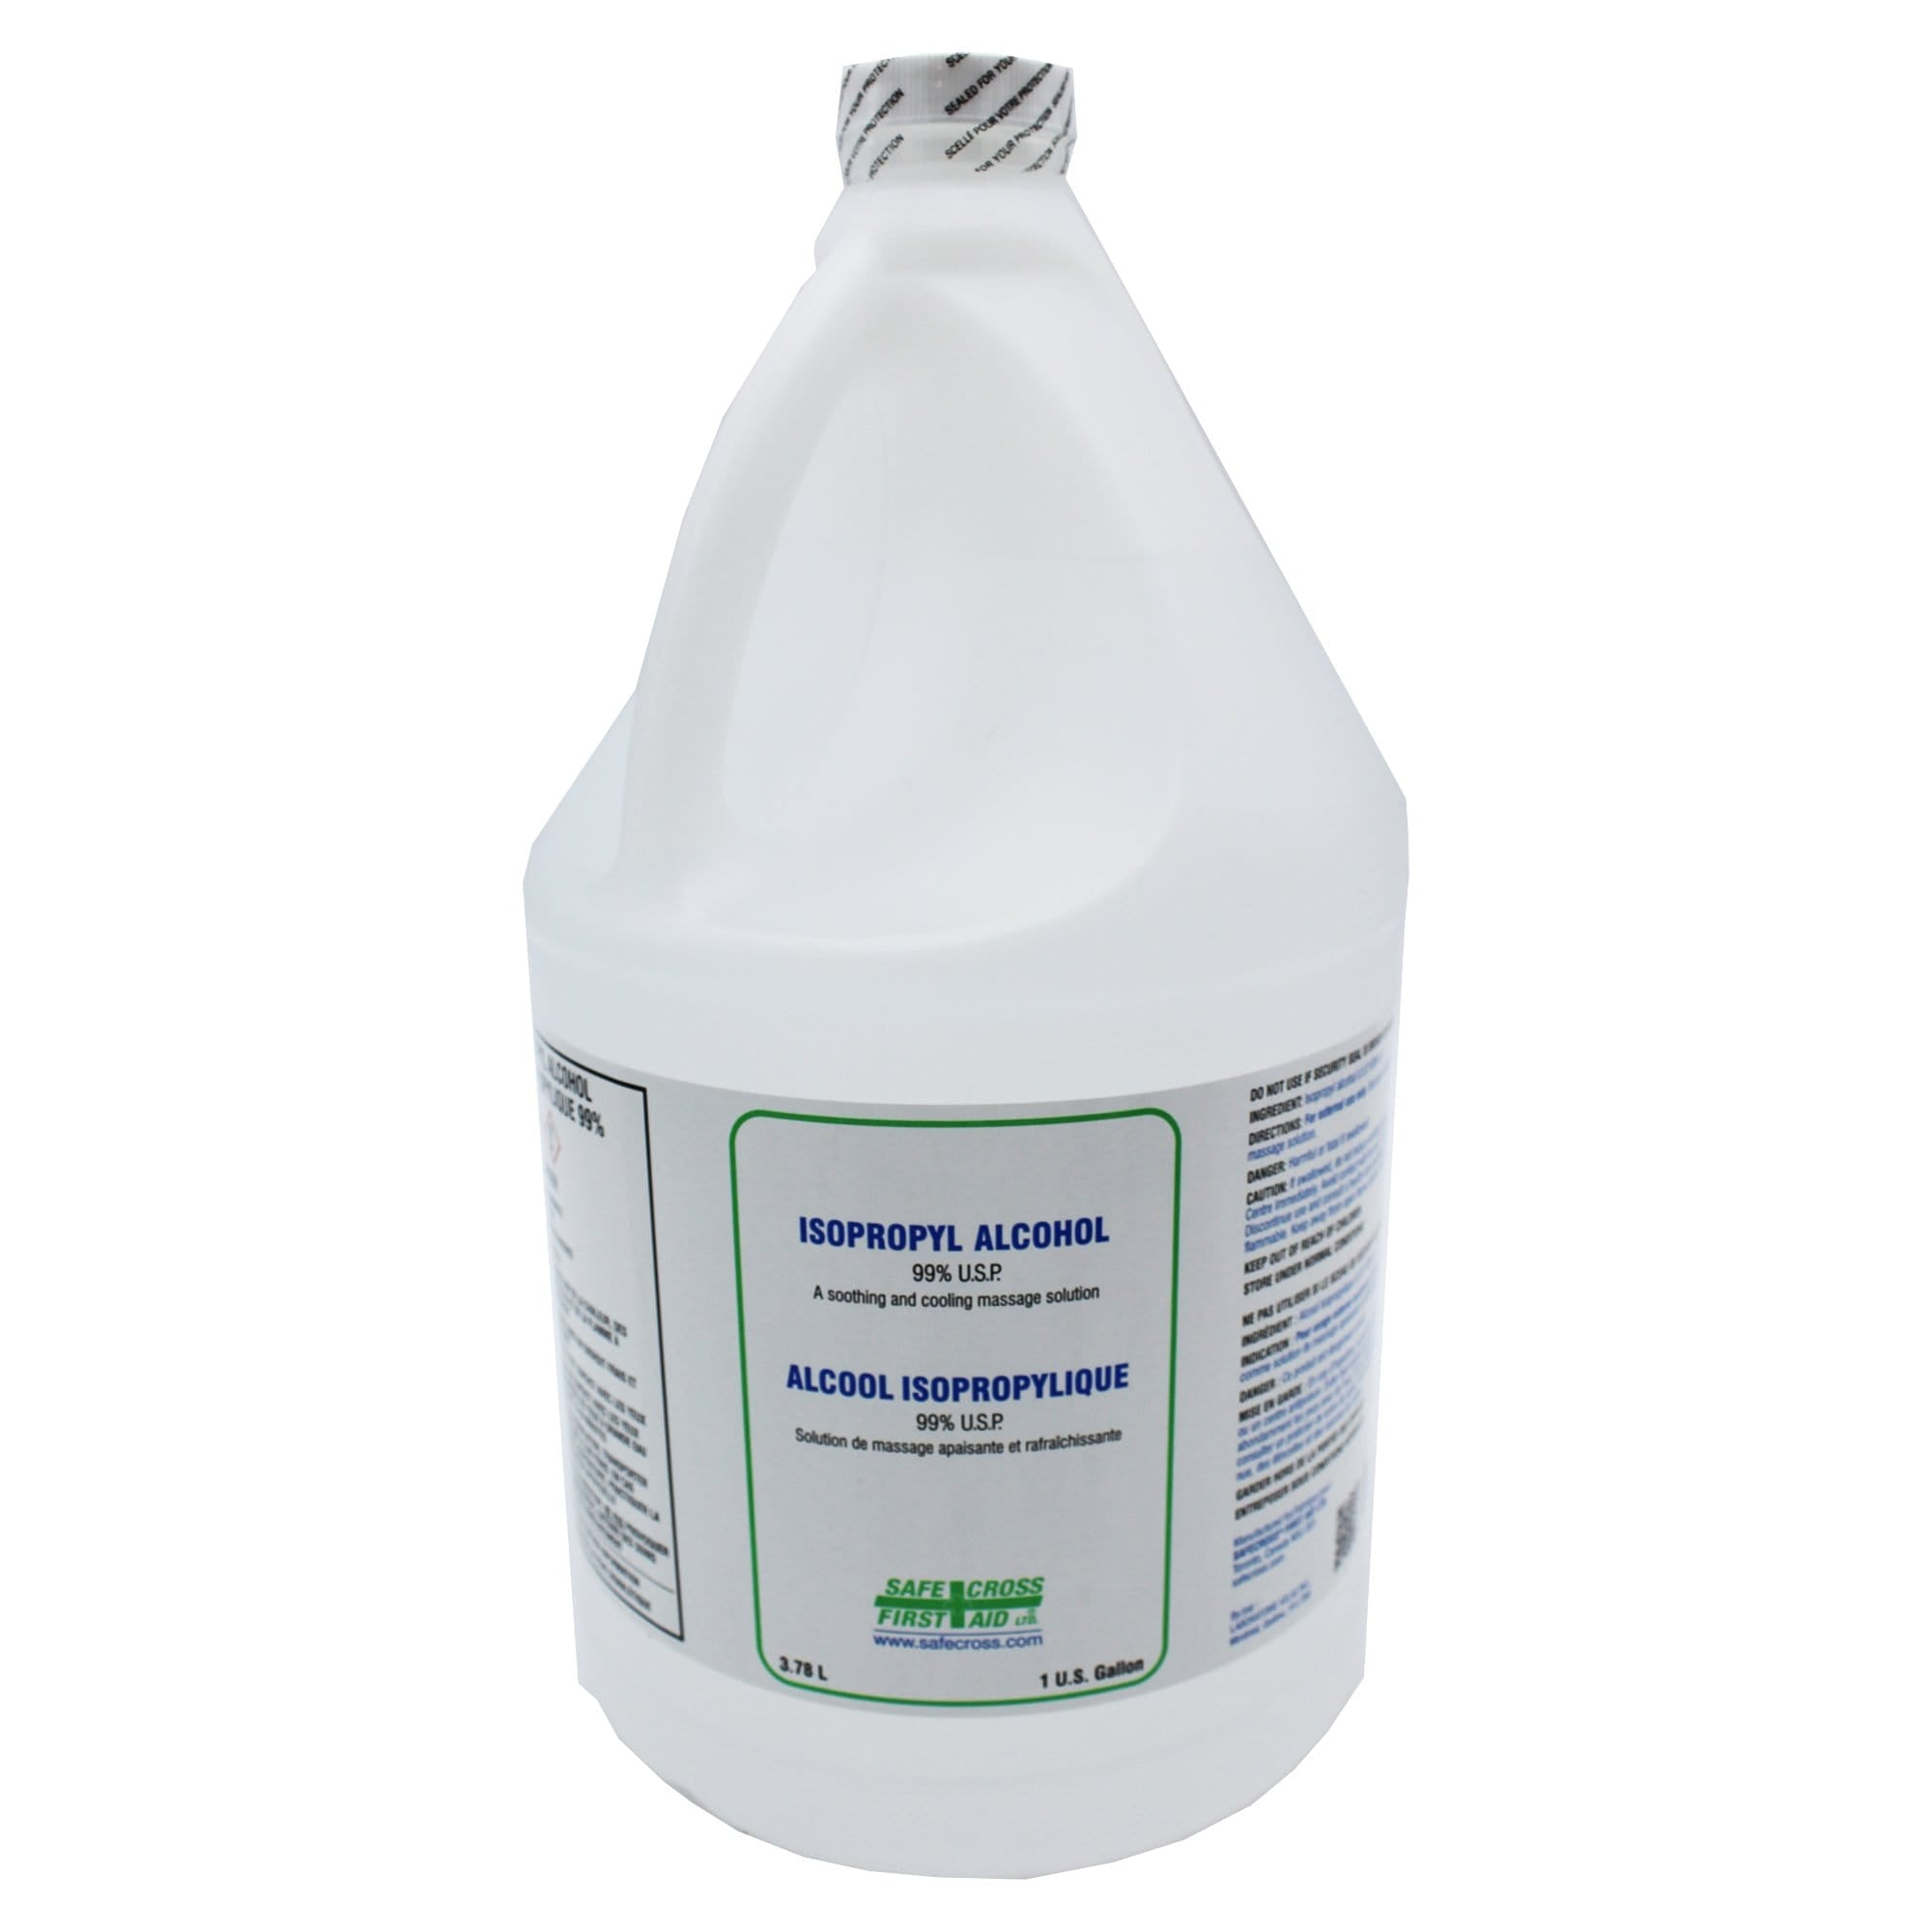 Isopropyl Alcohol 99% - 1 Gallon